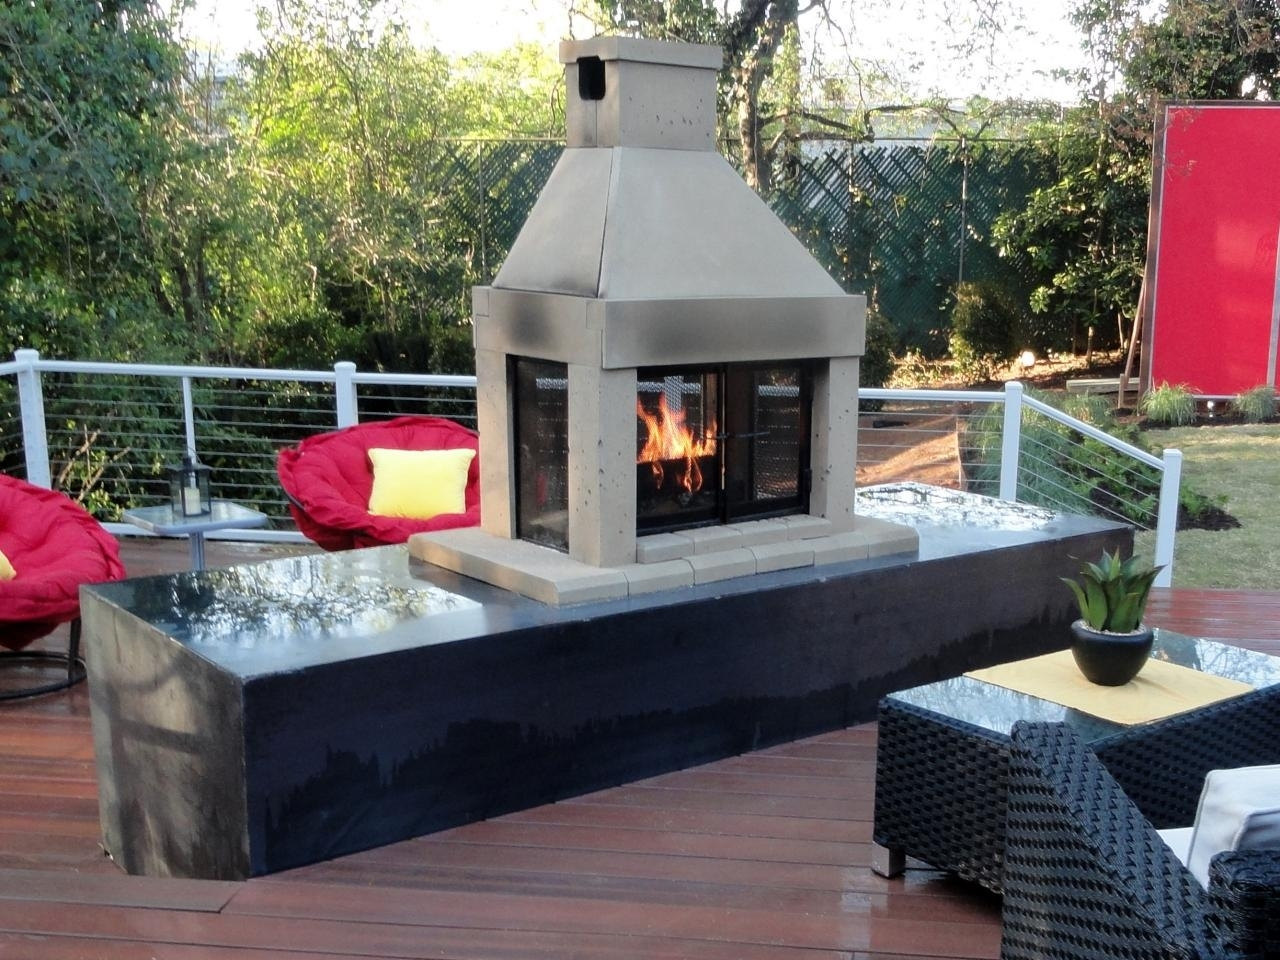 Image of: Outdoor Deck Fireplaces With Concept Image 36623 Kaajmaaja Pertaining To Outdoor Decks With Fireplaces Outdoor Decks With Fireplaces Ideas